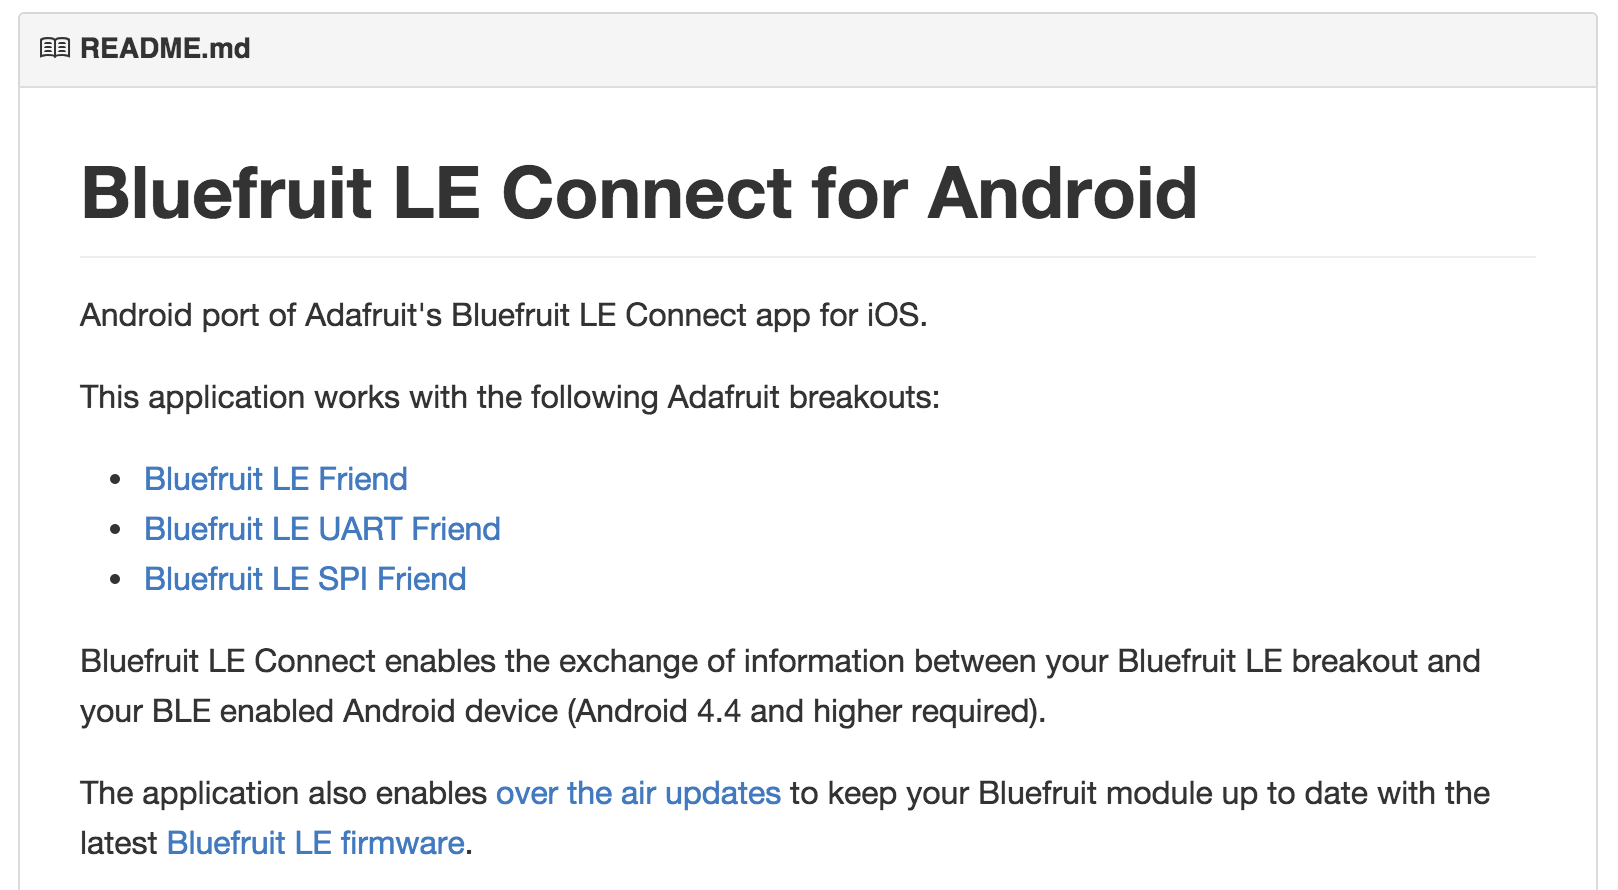 Bluefruit LE Connect for Android on Github « Adafruit